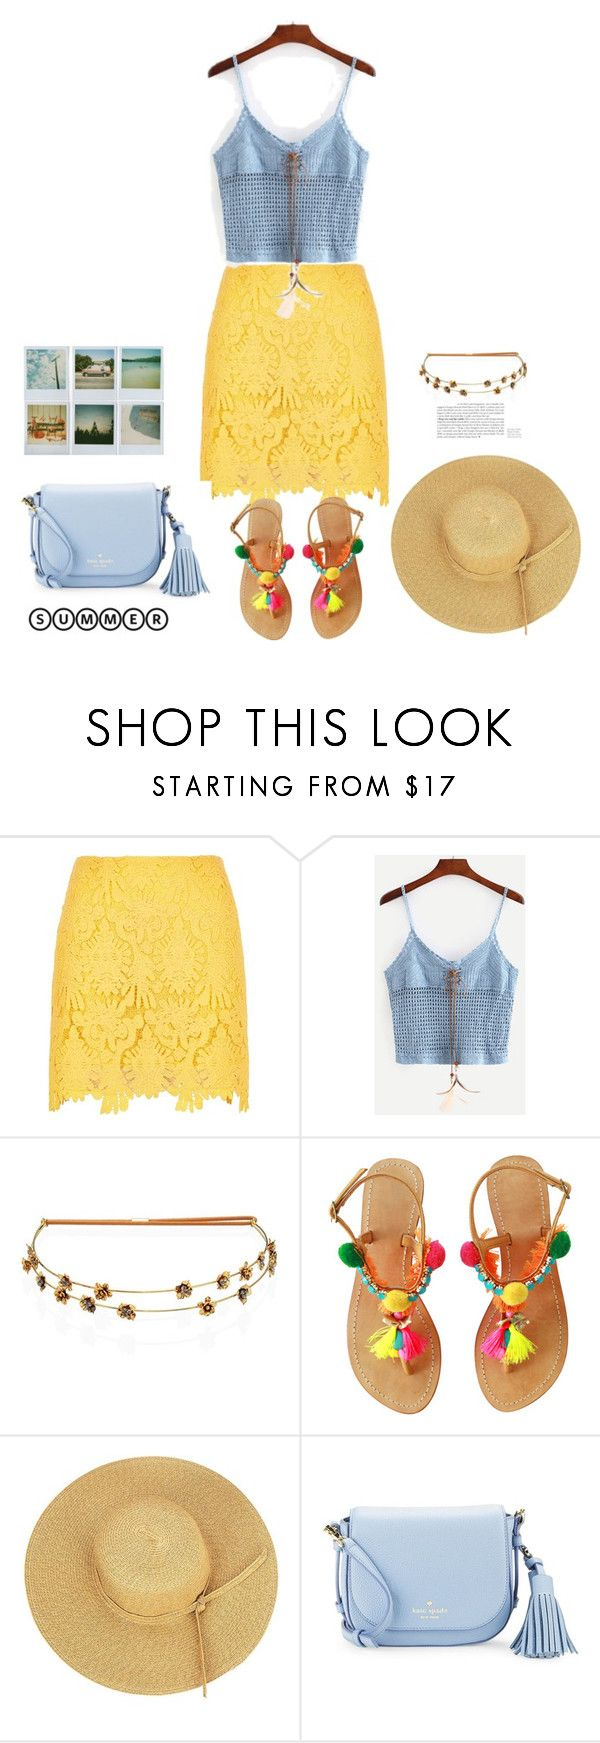 """""""SheIn(sheinside) Blue Lace-Up Crop Crochet Cami Top"""" by sweet-fashionista ❤ liked on Polyvore featuring River Island, Jennifer Behr, Polaroid and Kate Spade"""